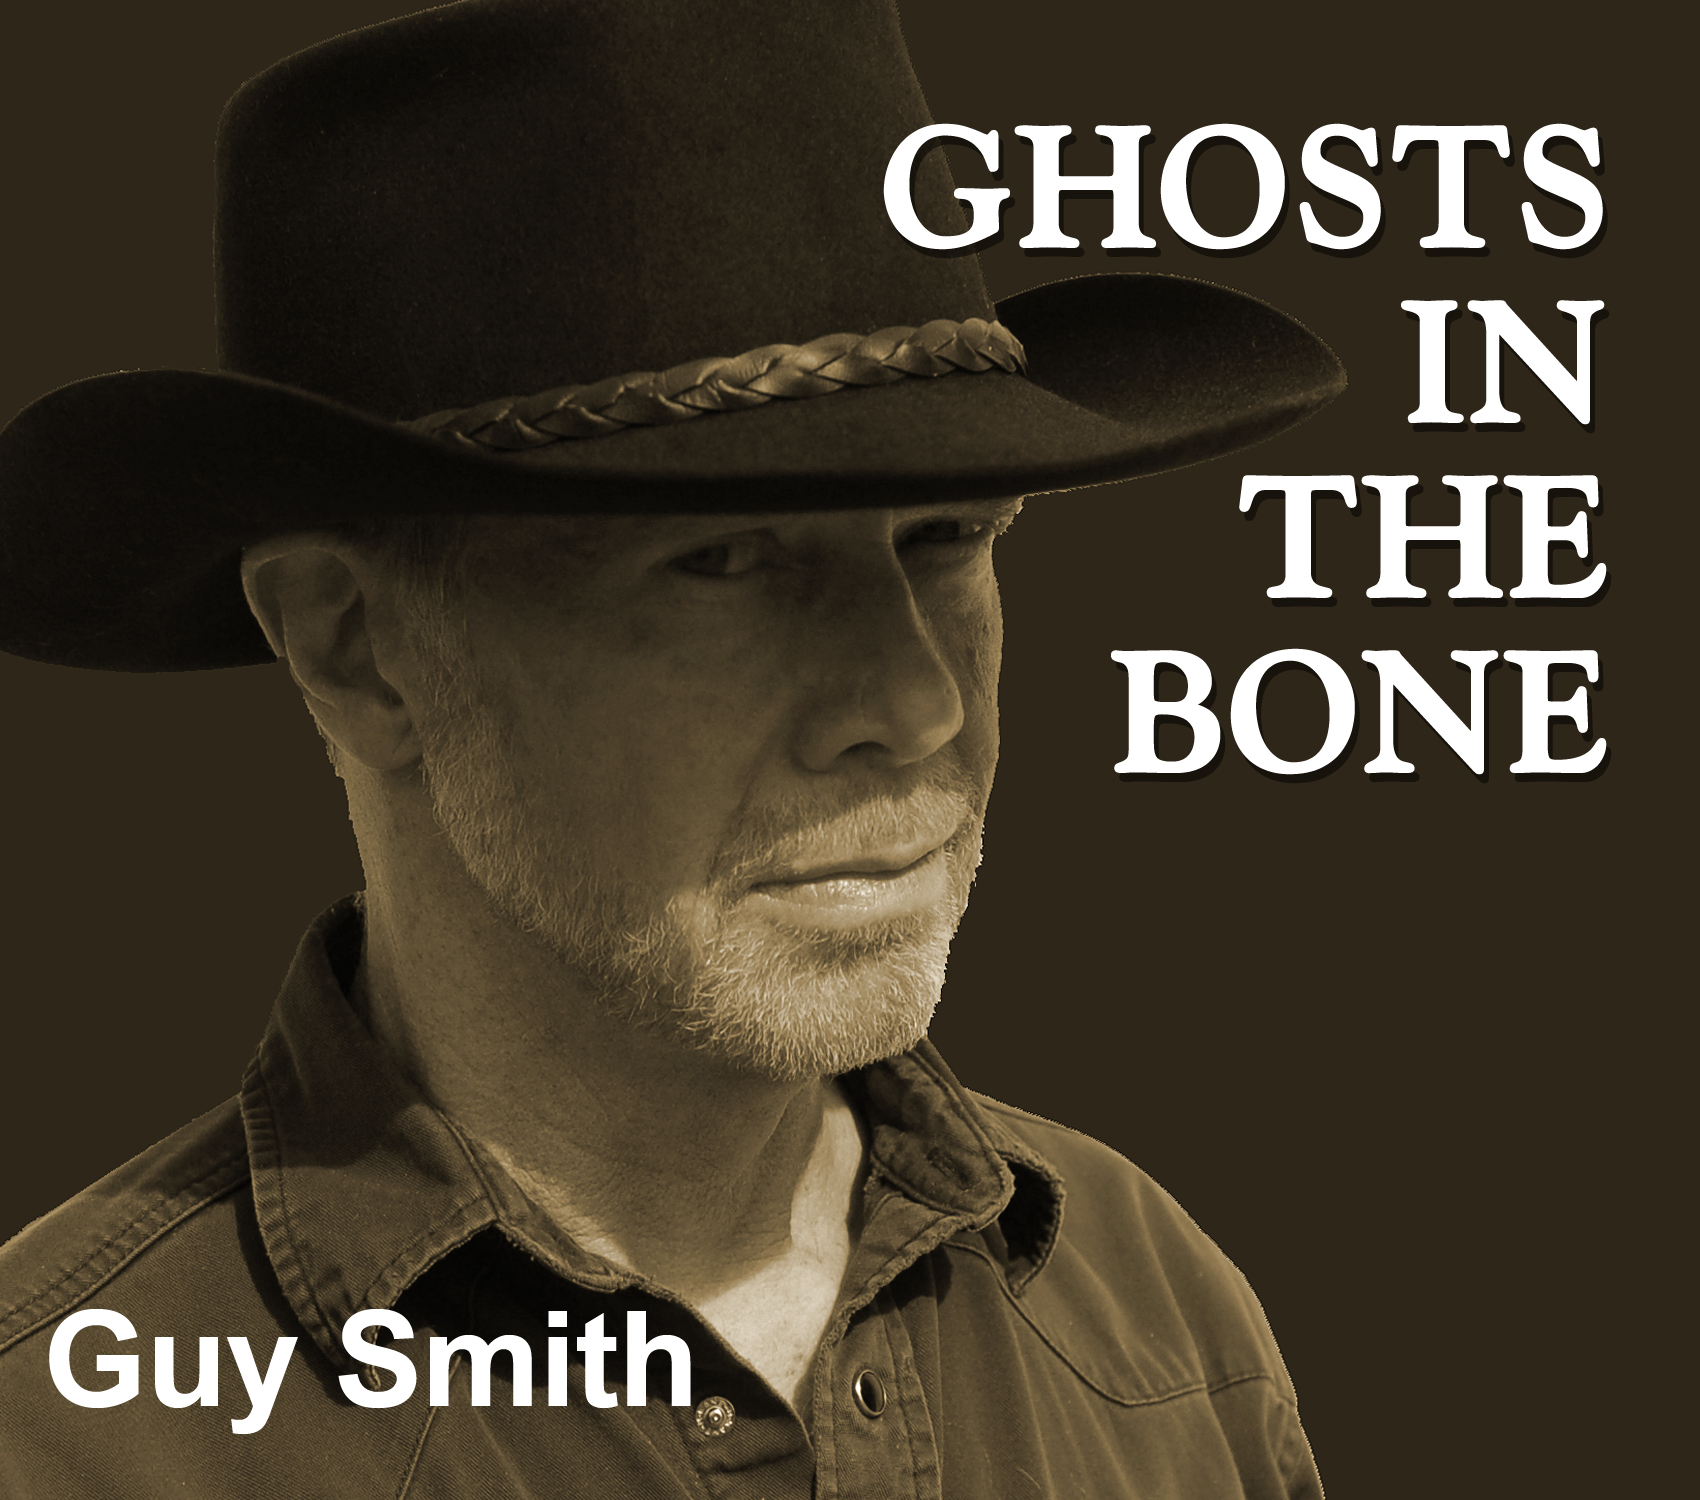 Ghosts in the Bone - an album by Guy Smith